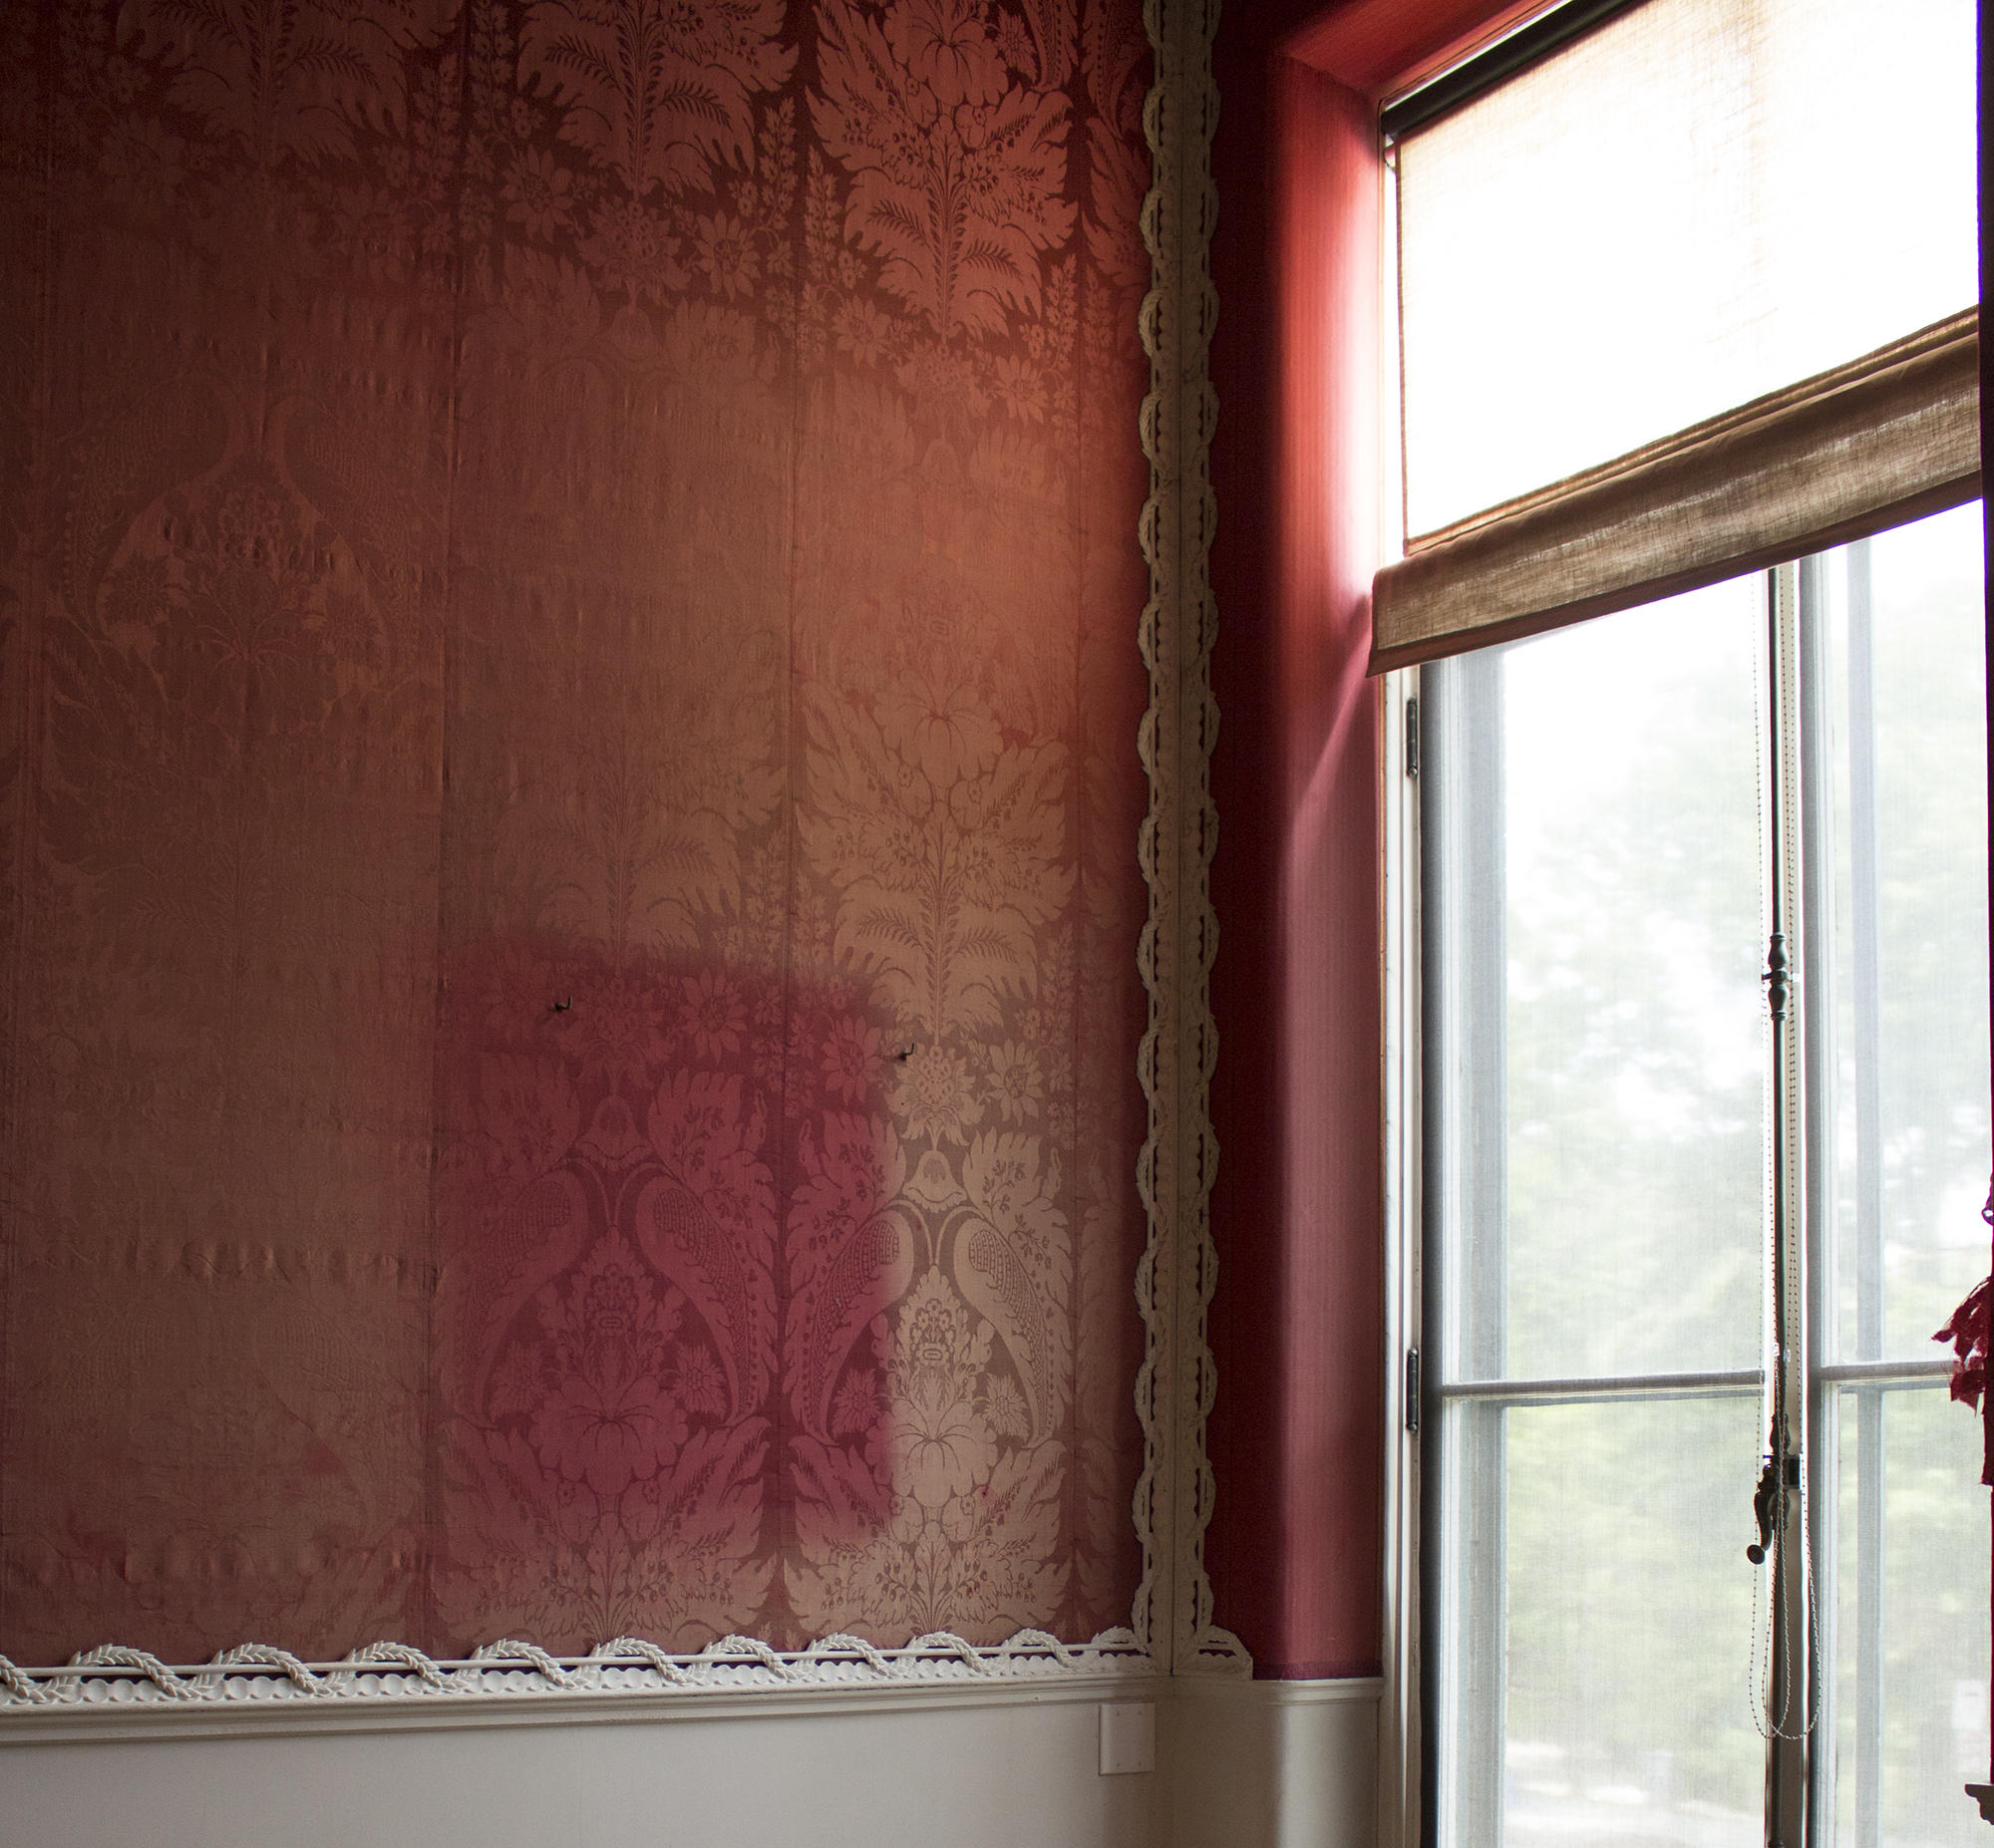 Red silk walls with noticeable light discoloration.